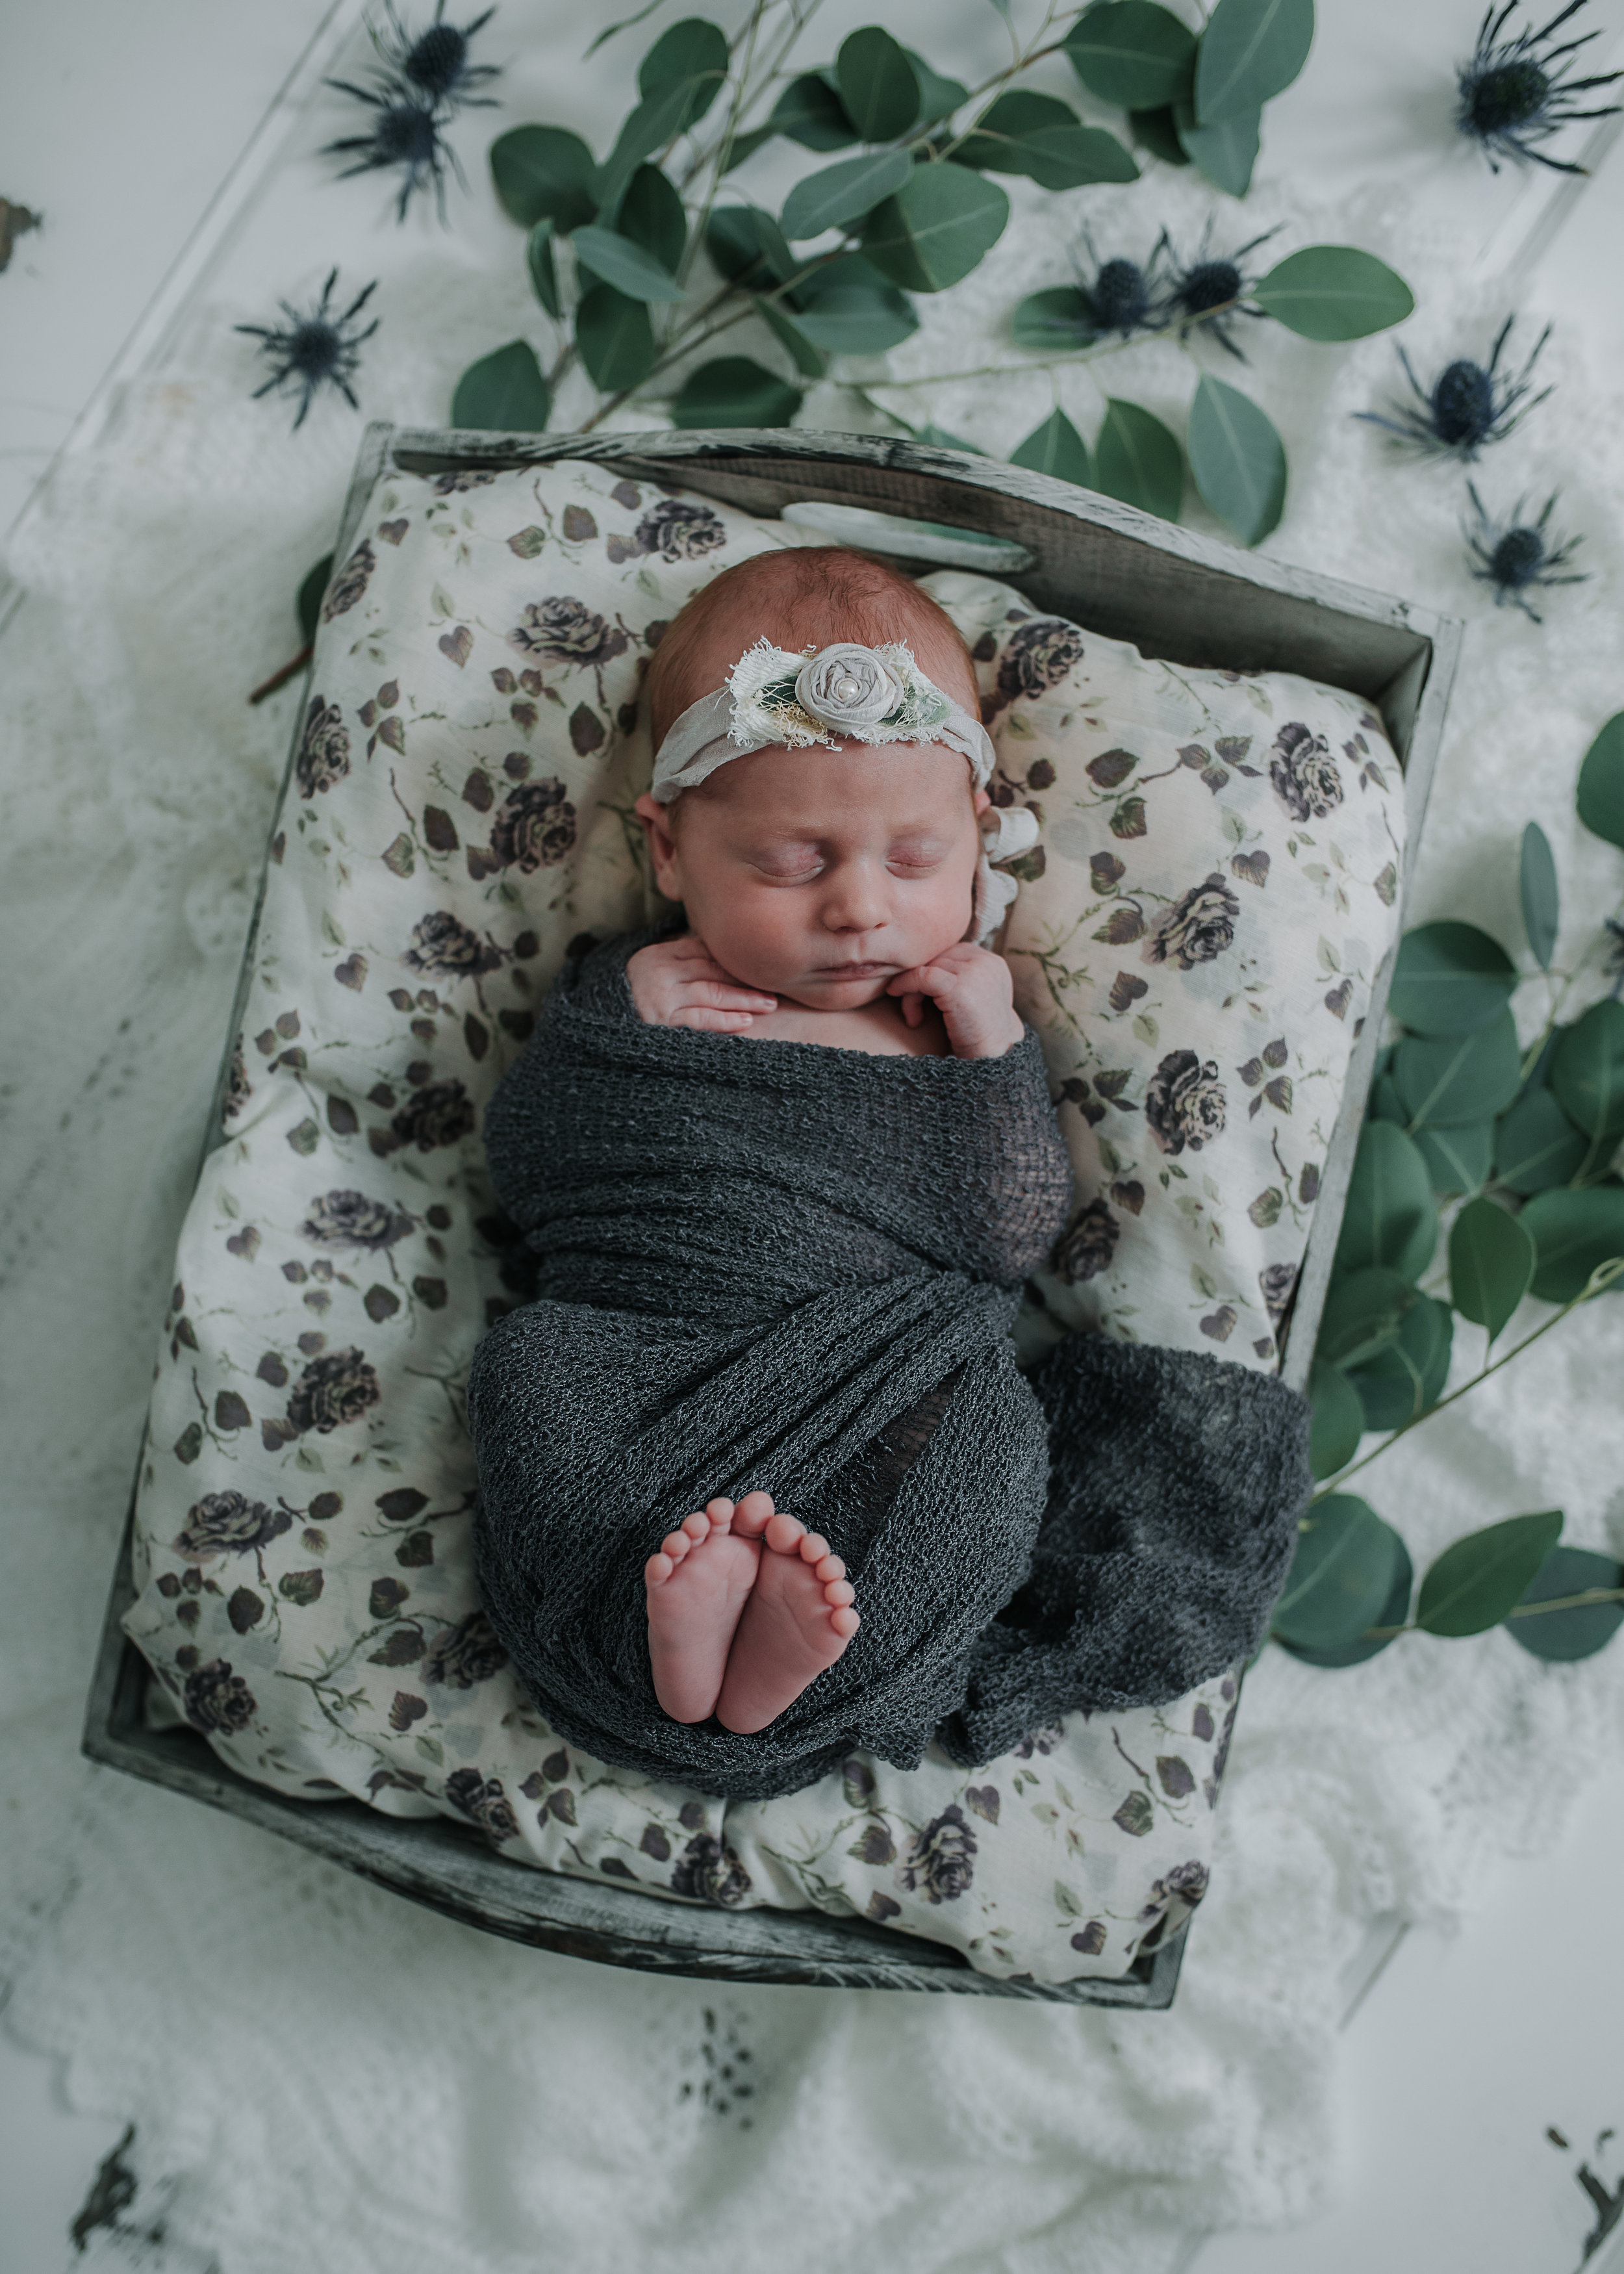 Sunshine_Coast_B.C_Newborn_Photographer_Paige_lorraine_photography (5).jpg